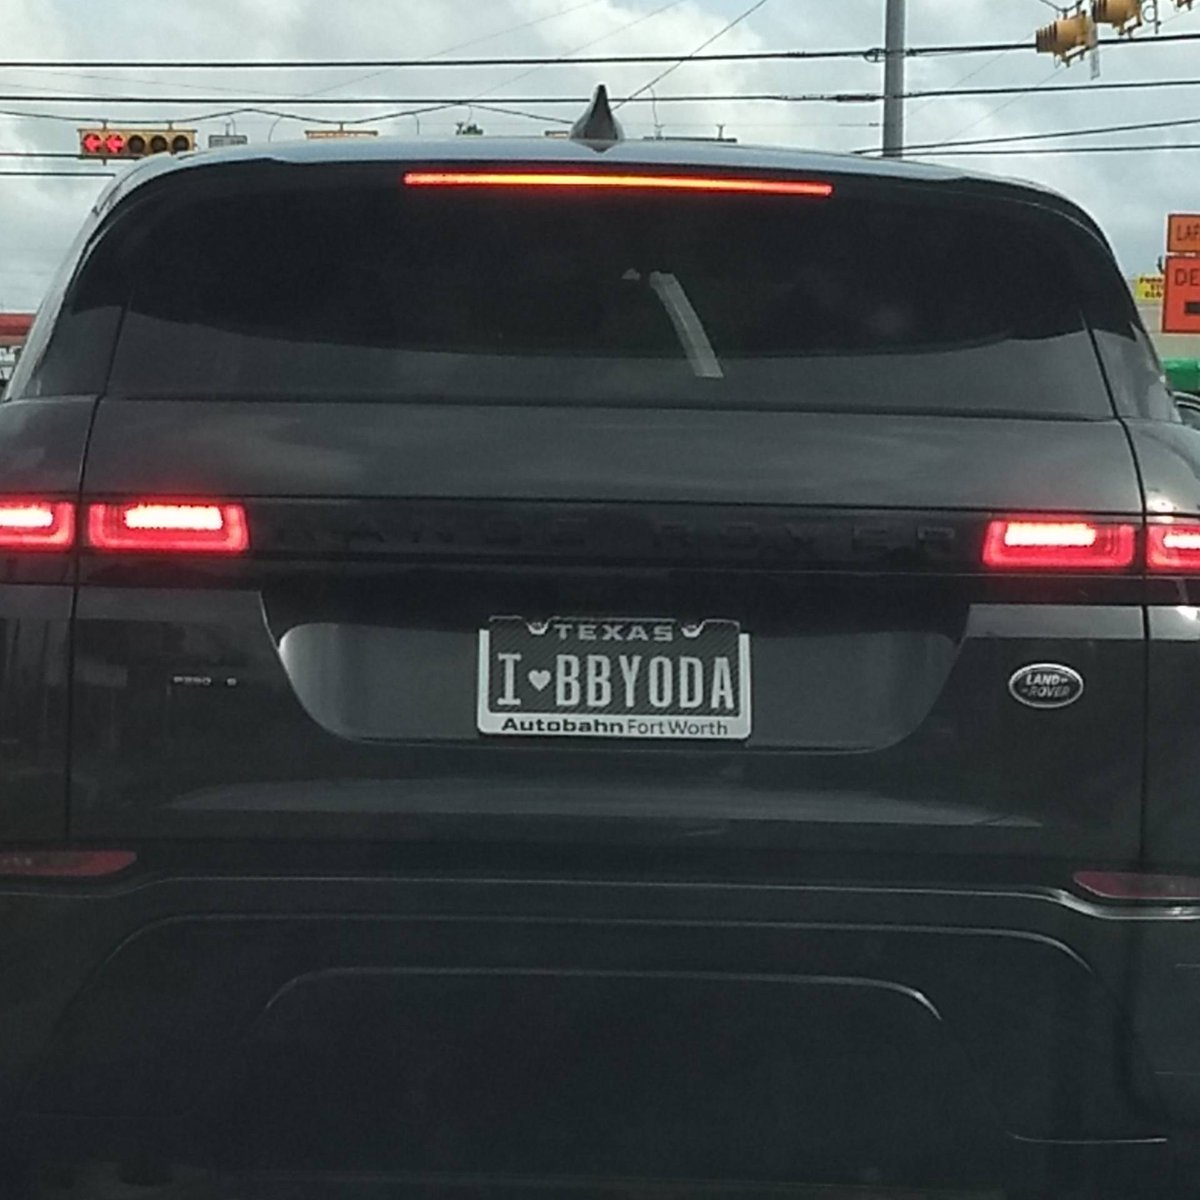 I DON'T KNOW YOU BUT BLESS YOU. #starwars #ThisIsTheWay